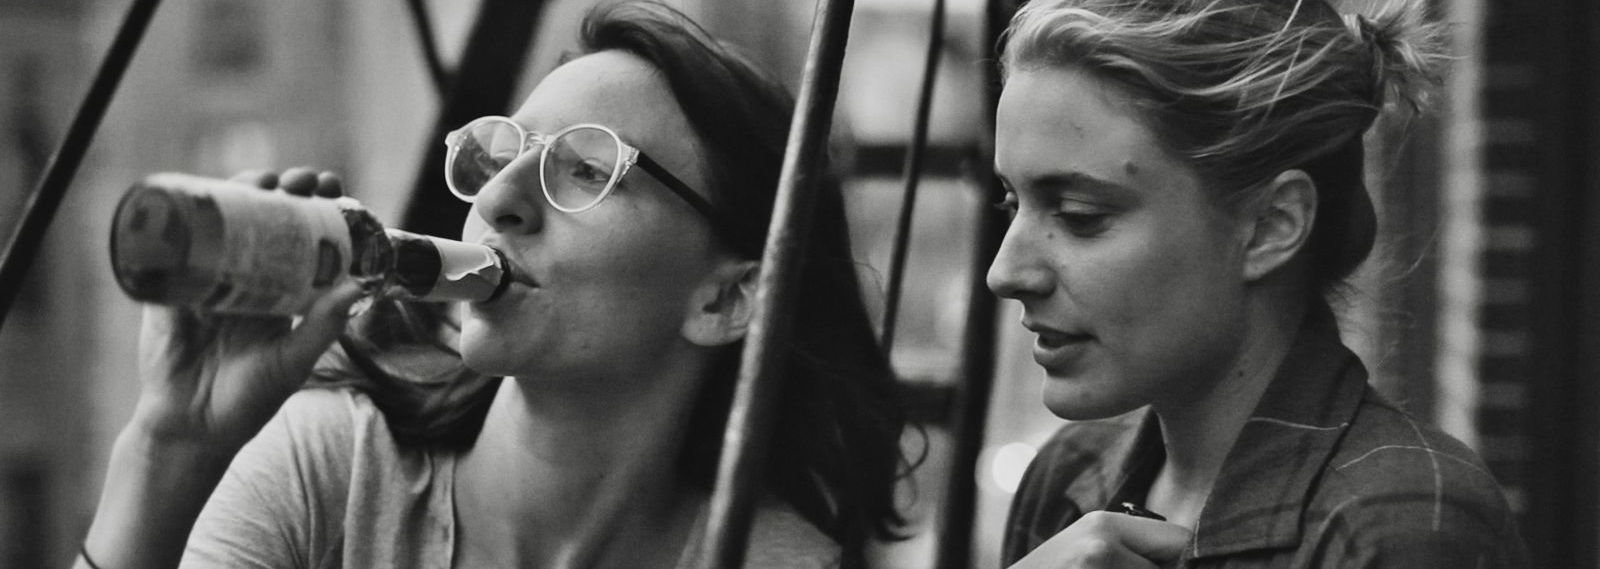 Film: Frances Ha feature image